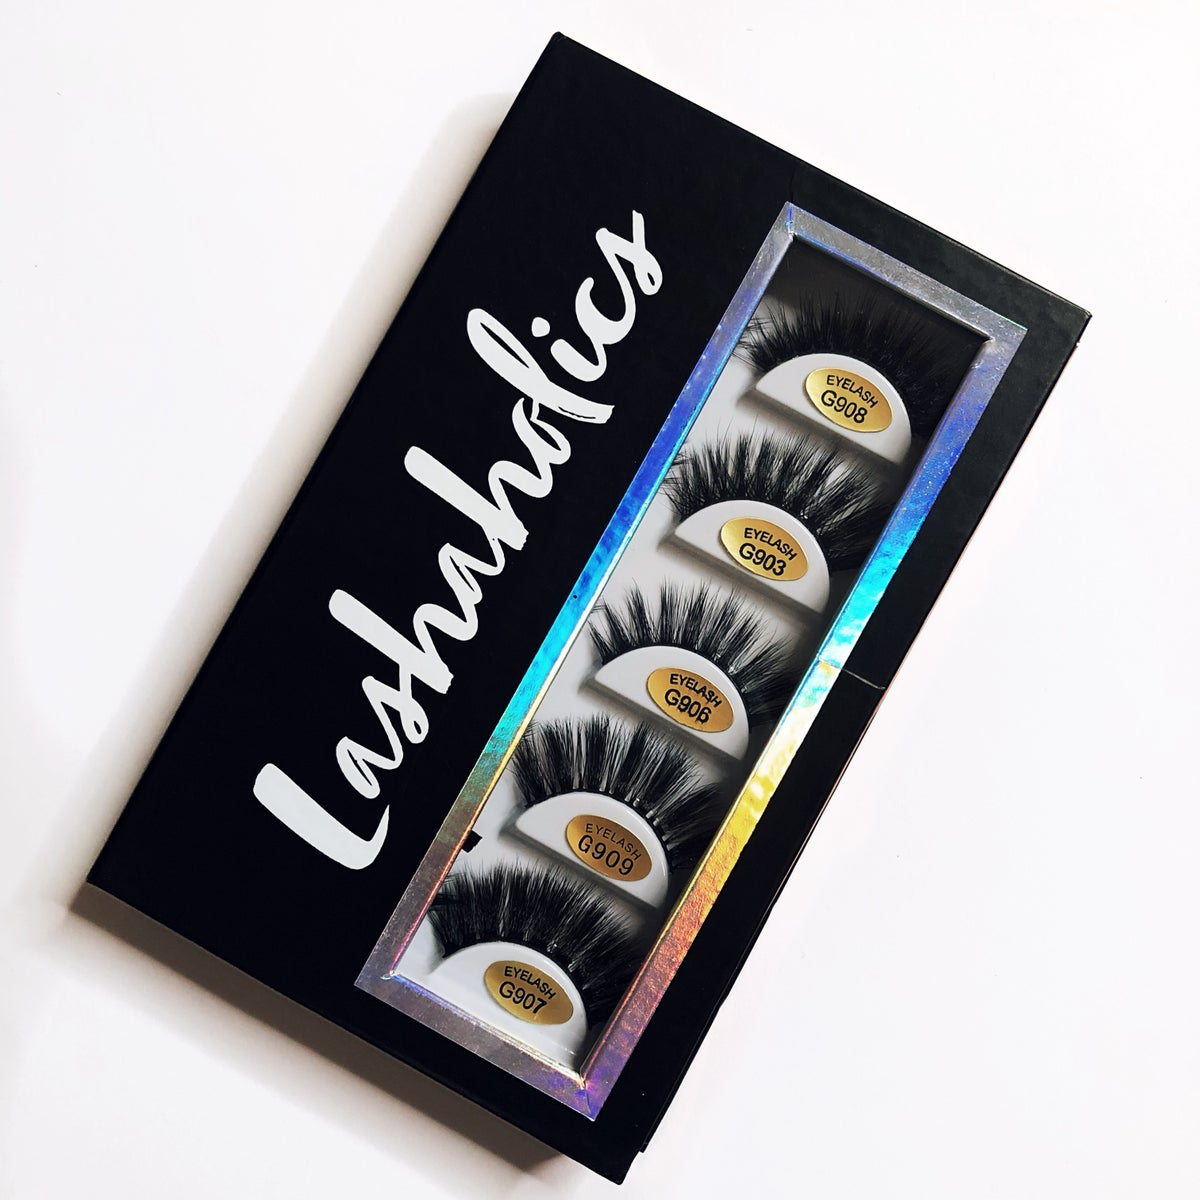 Image of Lash Story Book